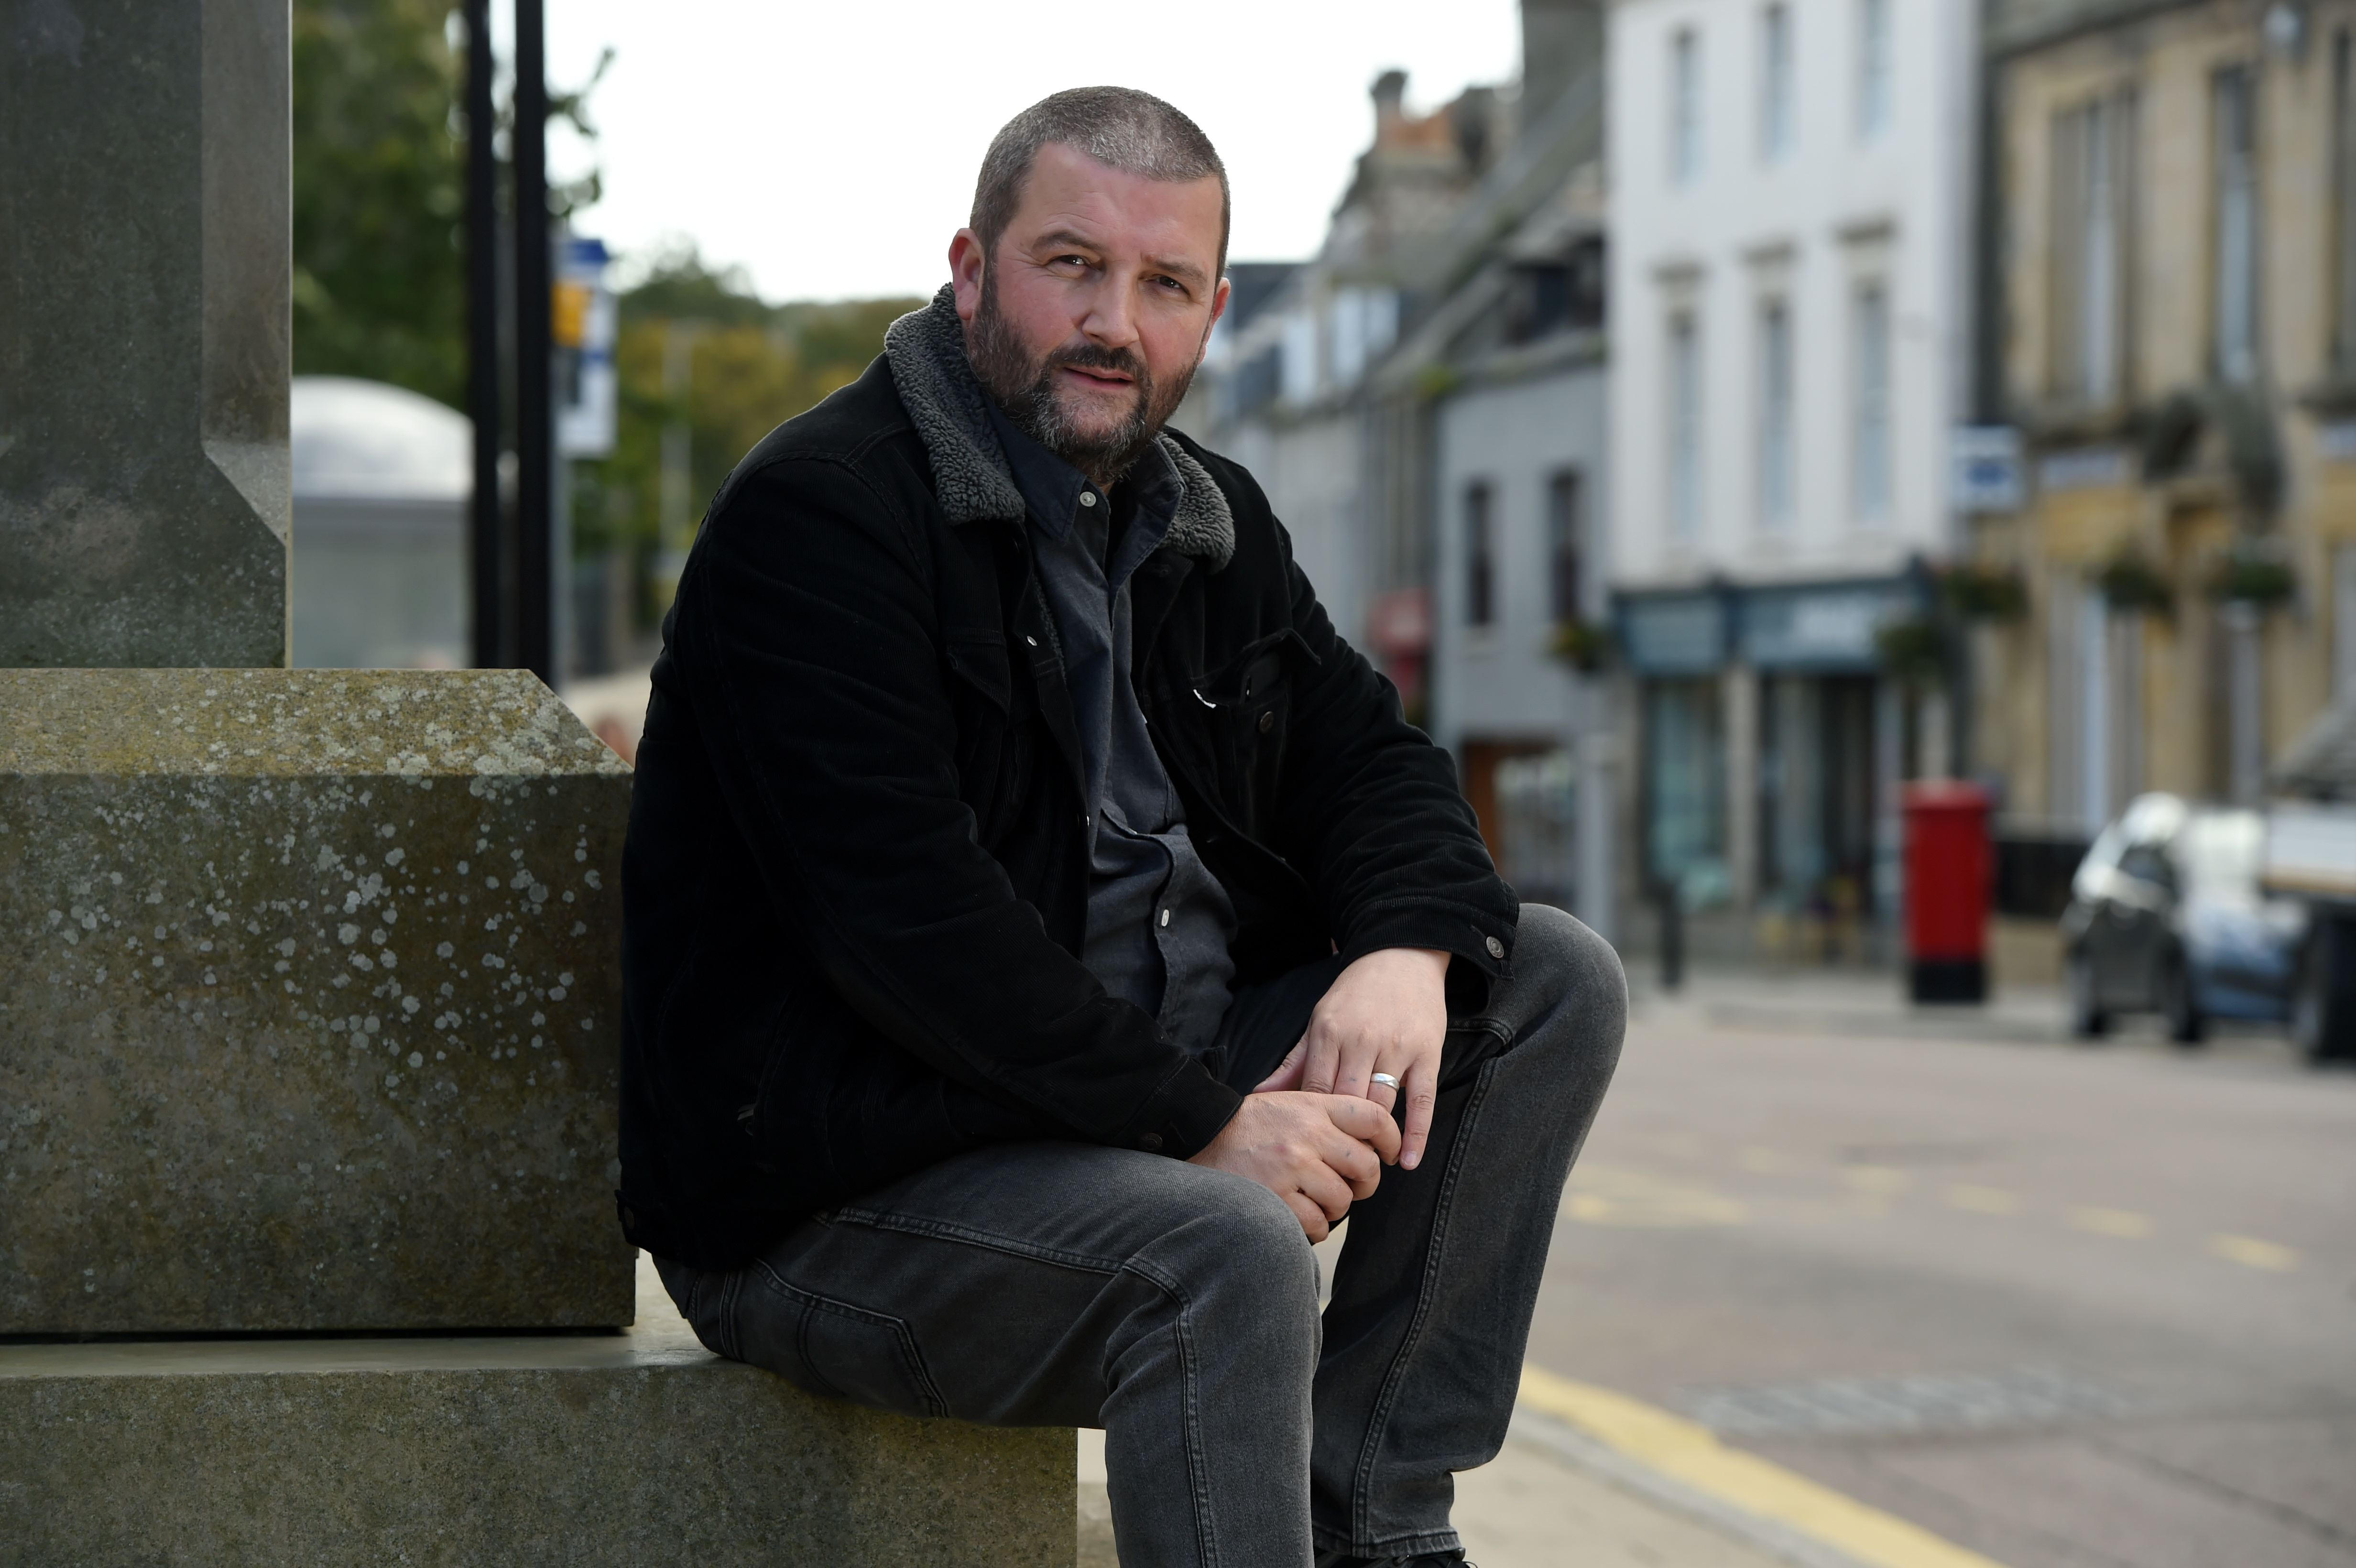 Gordon Cruden is area manager for a charity which helps people overcome addiction